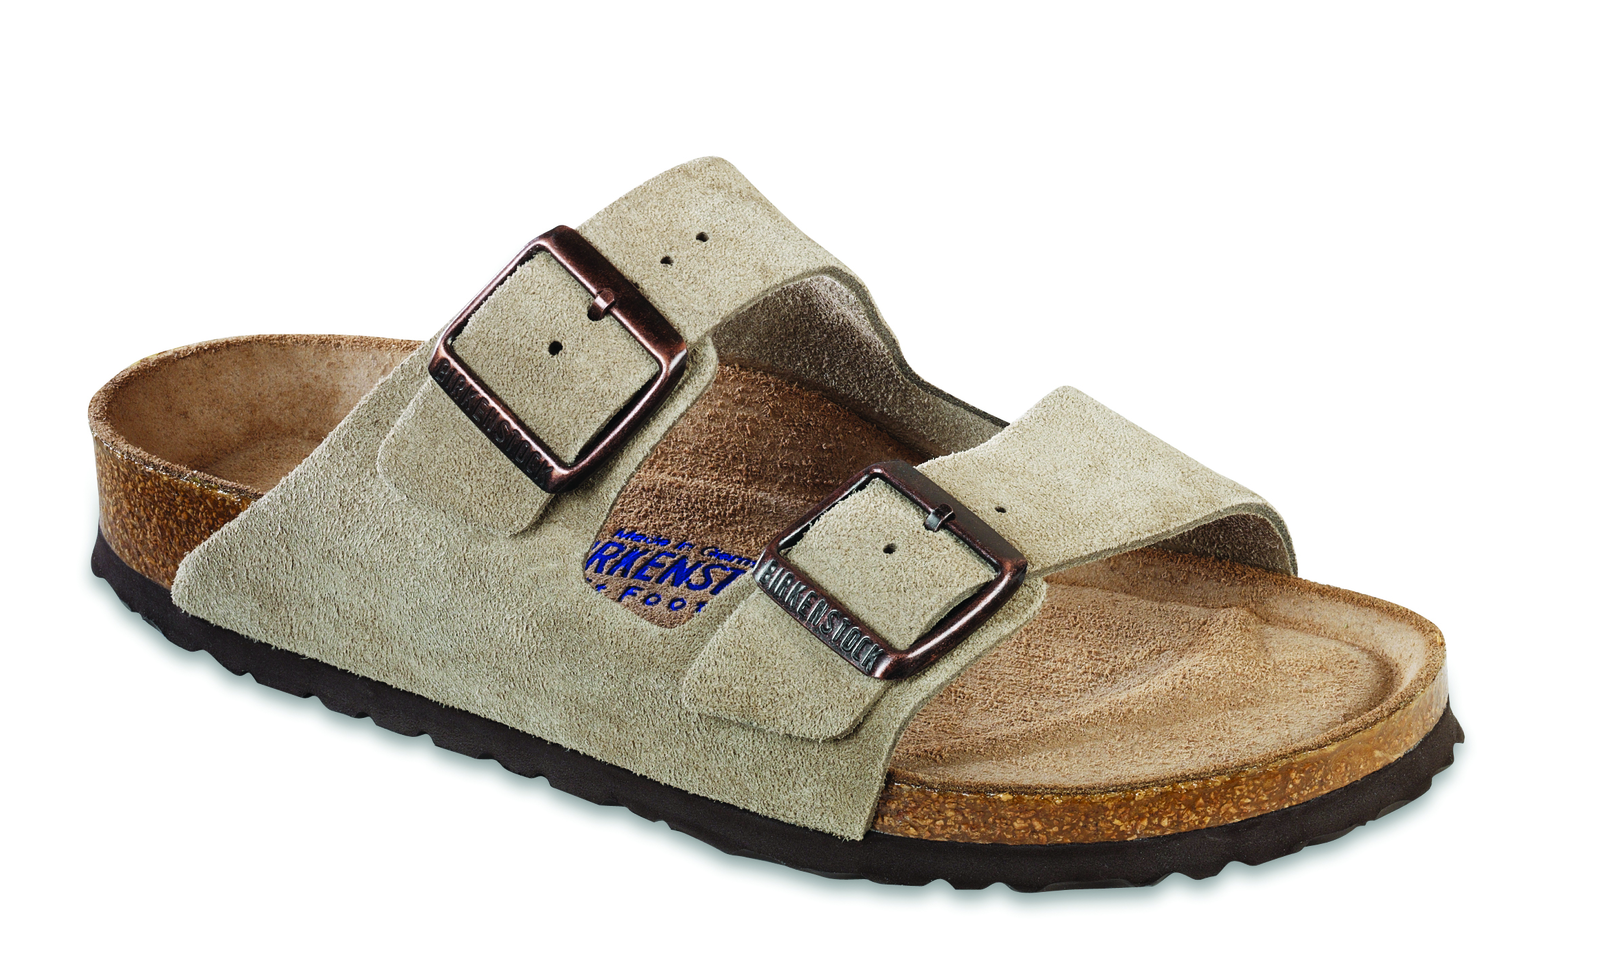 soft suede birkenstock arizona adjustable taupe sandal SIGNATURE DOUBLE STRAP SANDAL WITH BUCKLES